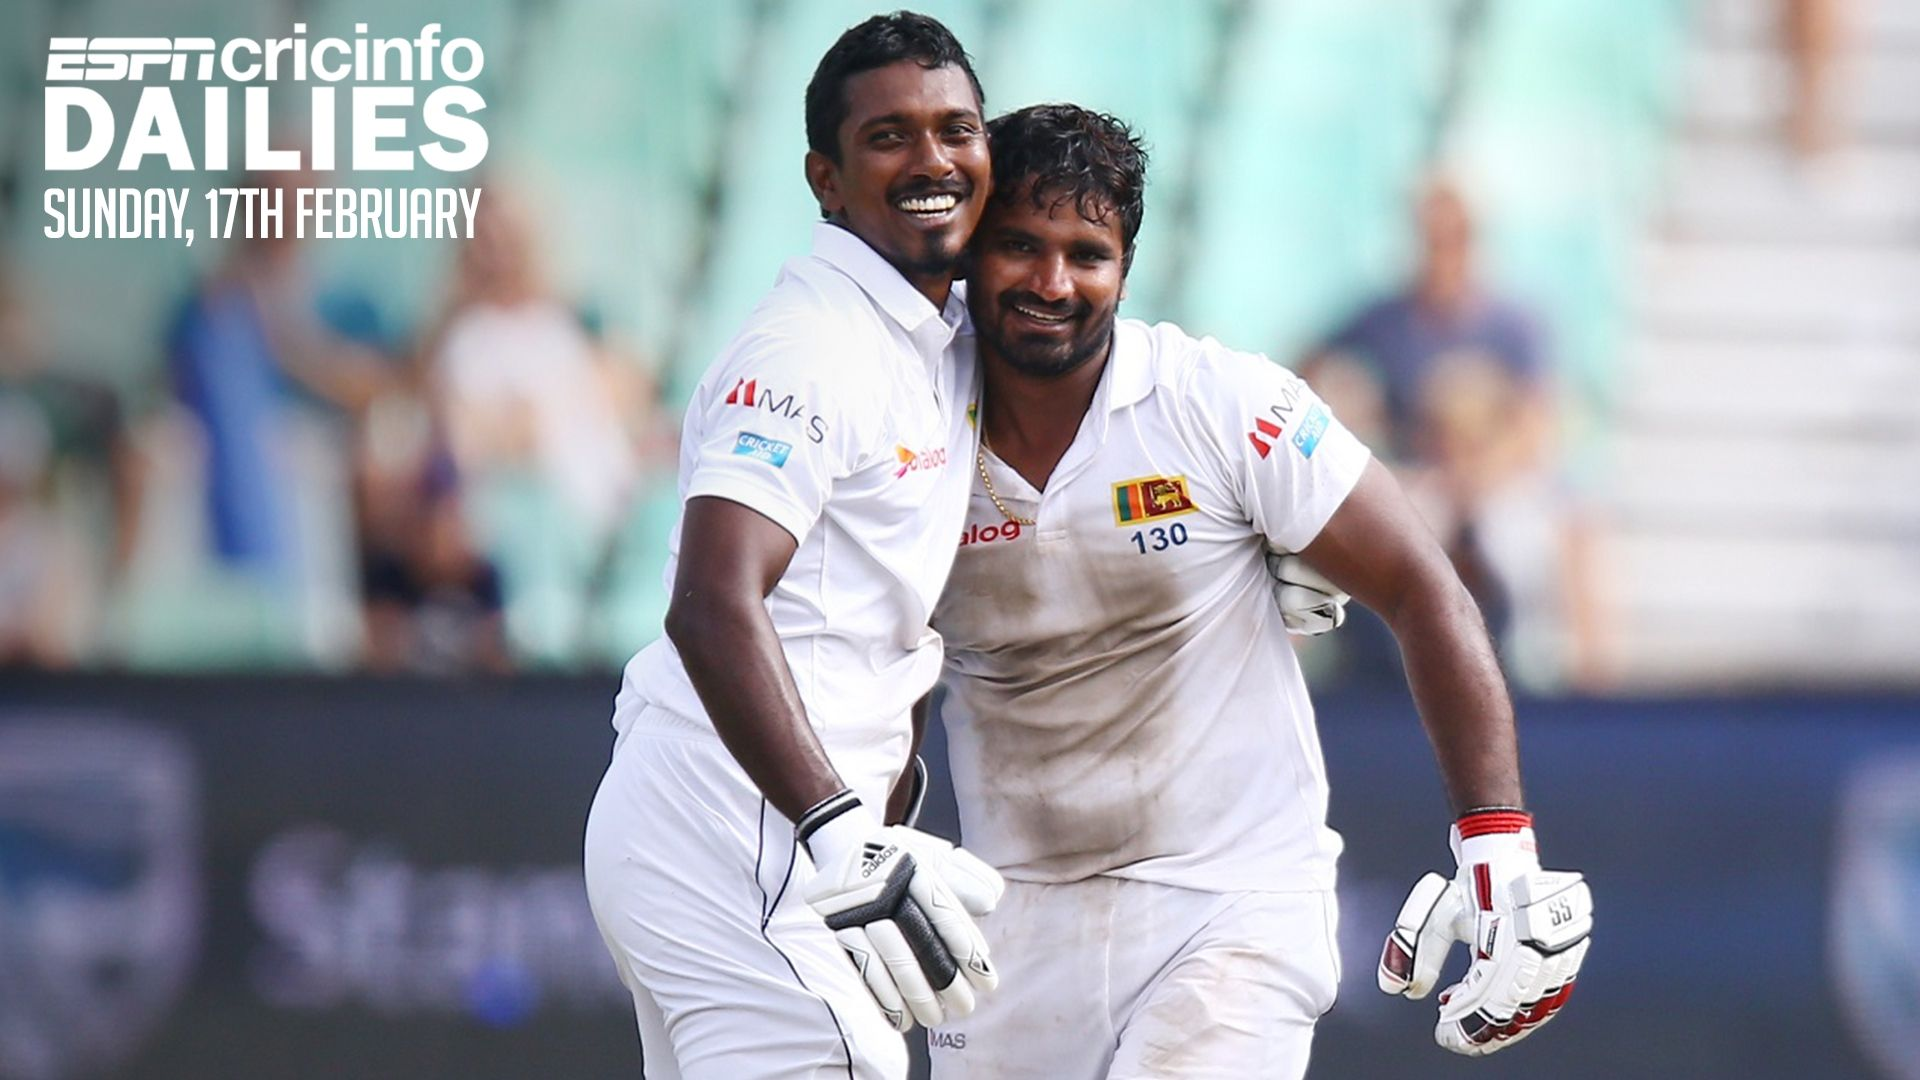 Dailies: Lara-esque Kusal Perera guides Sri Lanka home